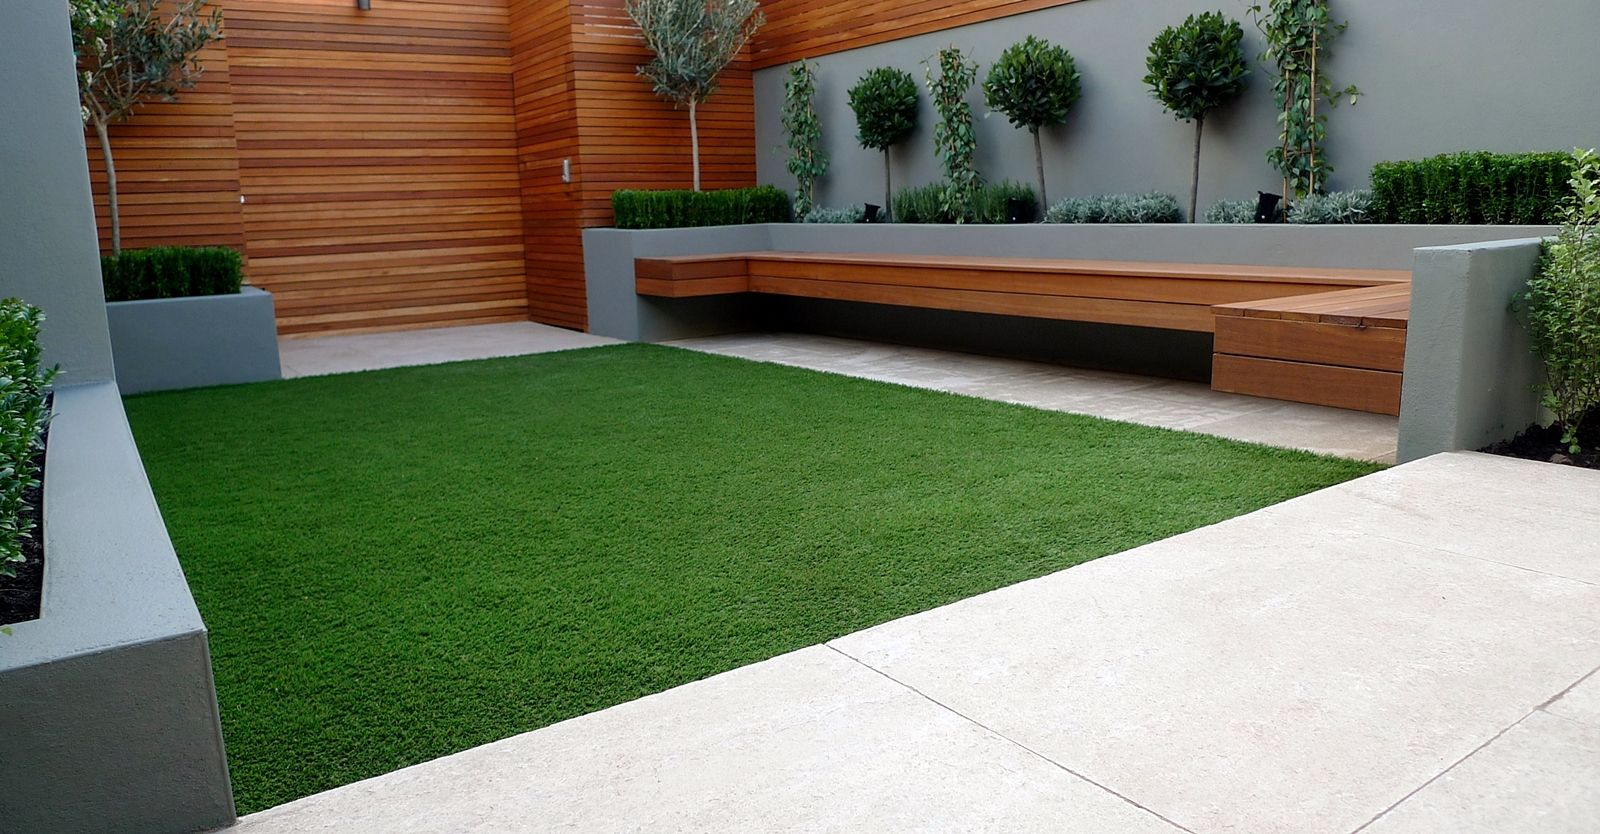 Modern And Contemporary Garden Design Battersea Clapham Dulwich - Contemporary garden ideas uk